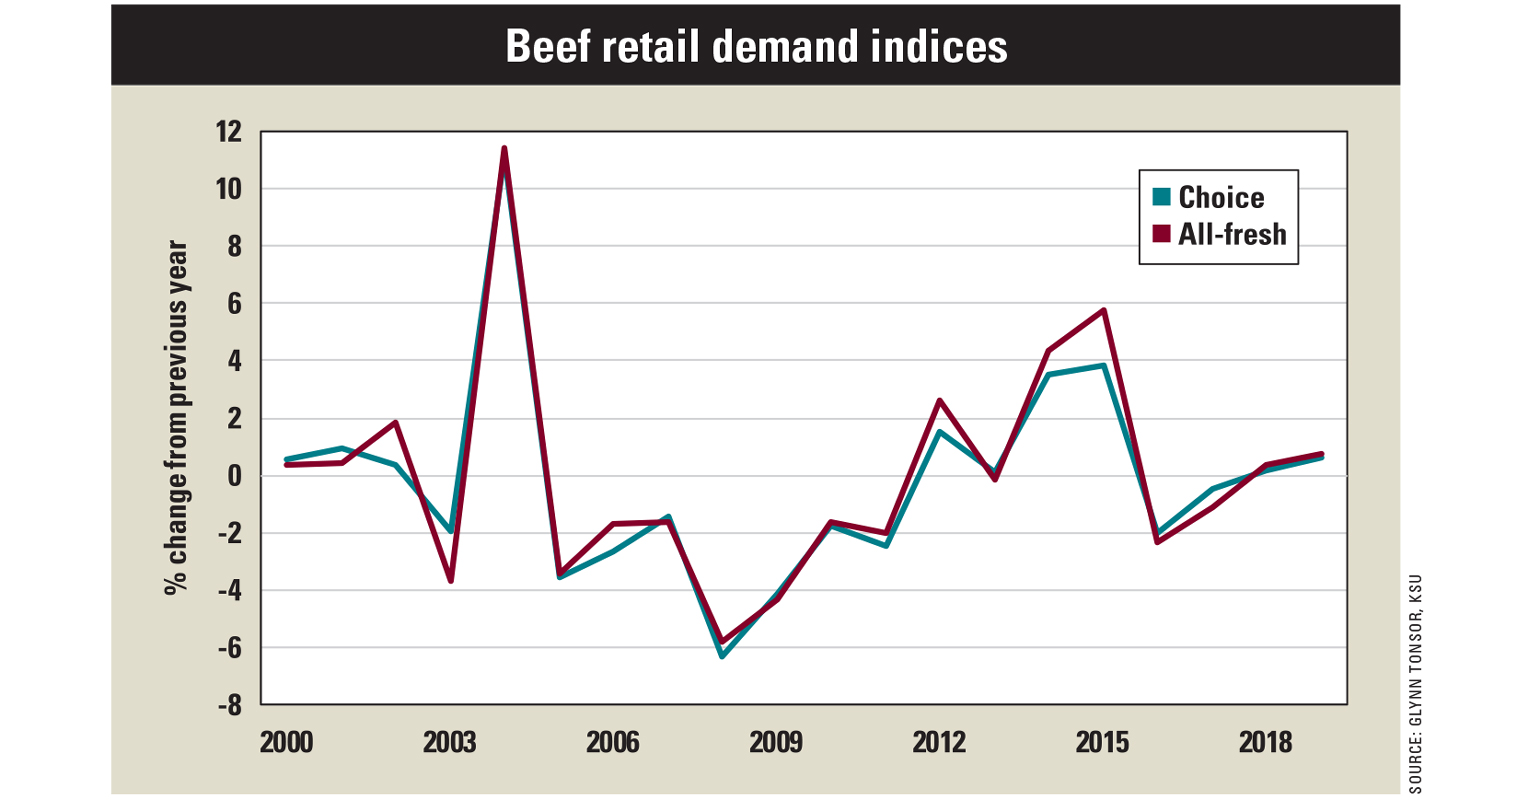 Beef retail demand indices chart